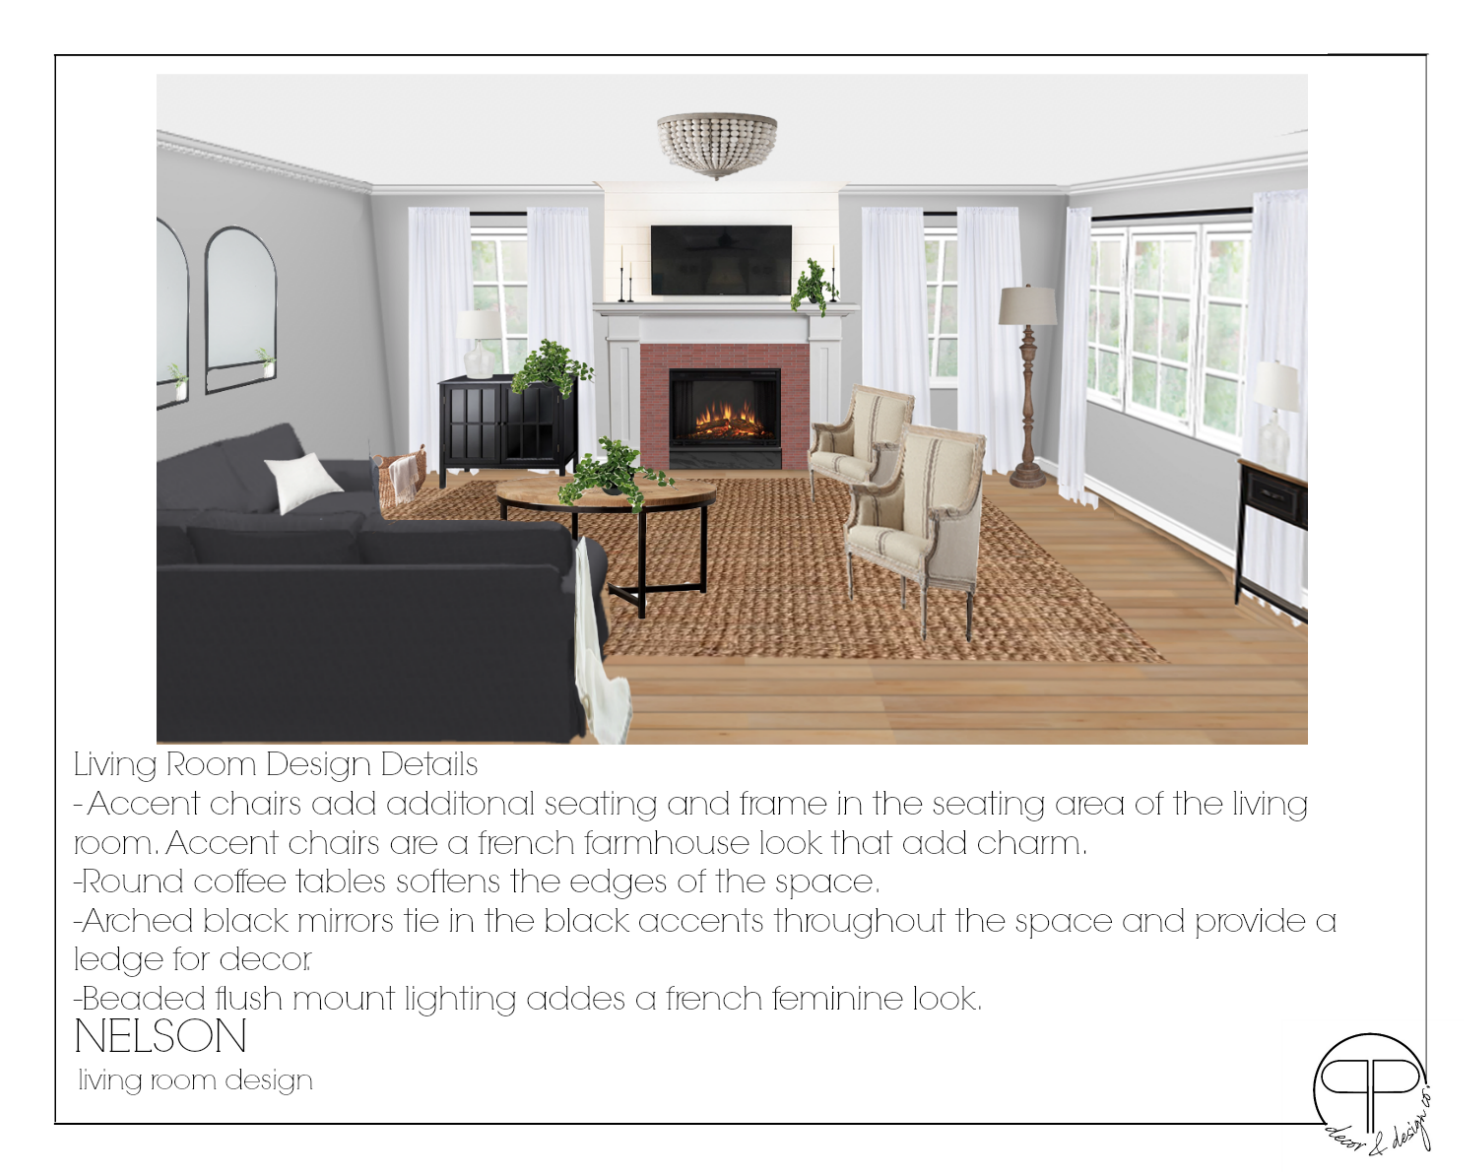 Nelson_Living_Room_Design_3.png